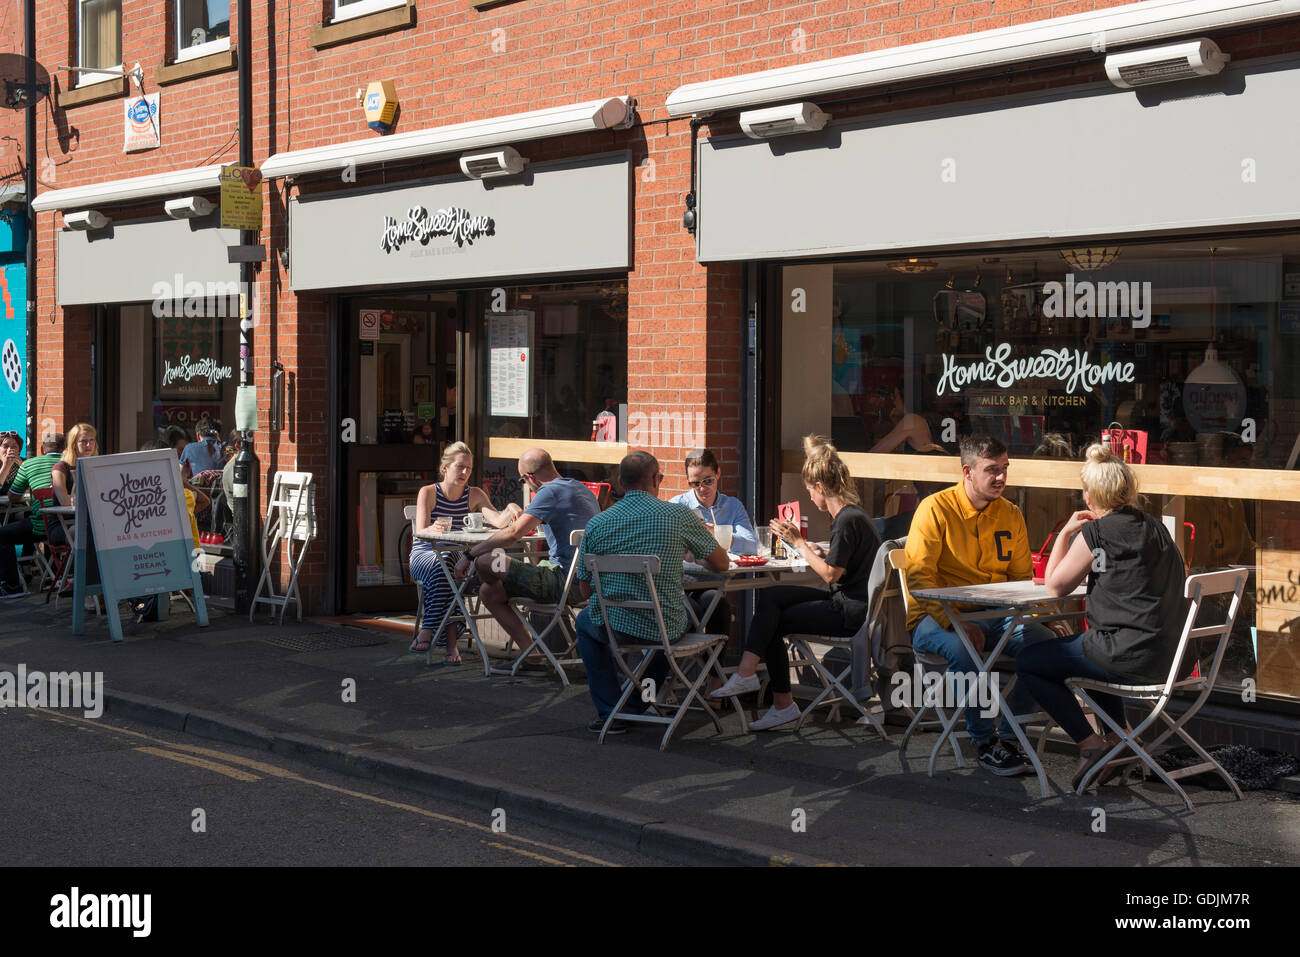 People enjoying a drink outside Home Sweet Home located on Edge Street in the Northern Quarter area of Manchester. - Stock Image